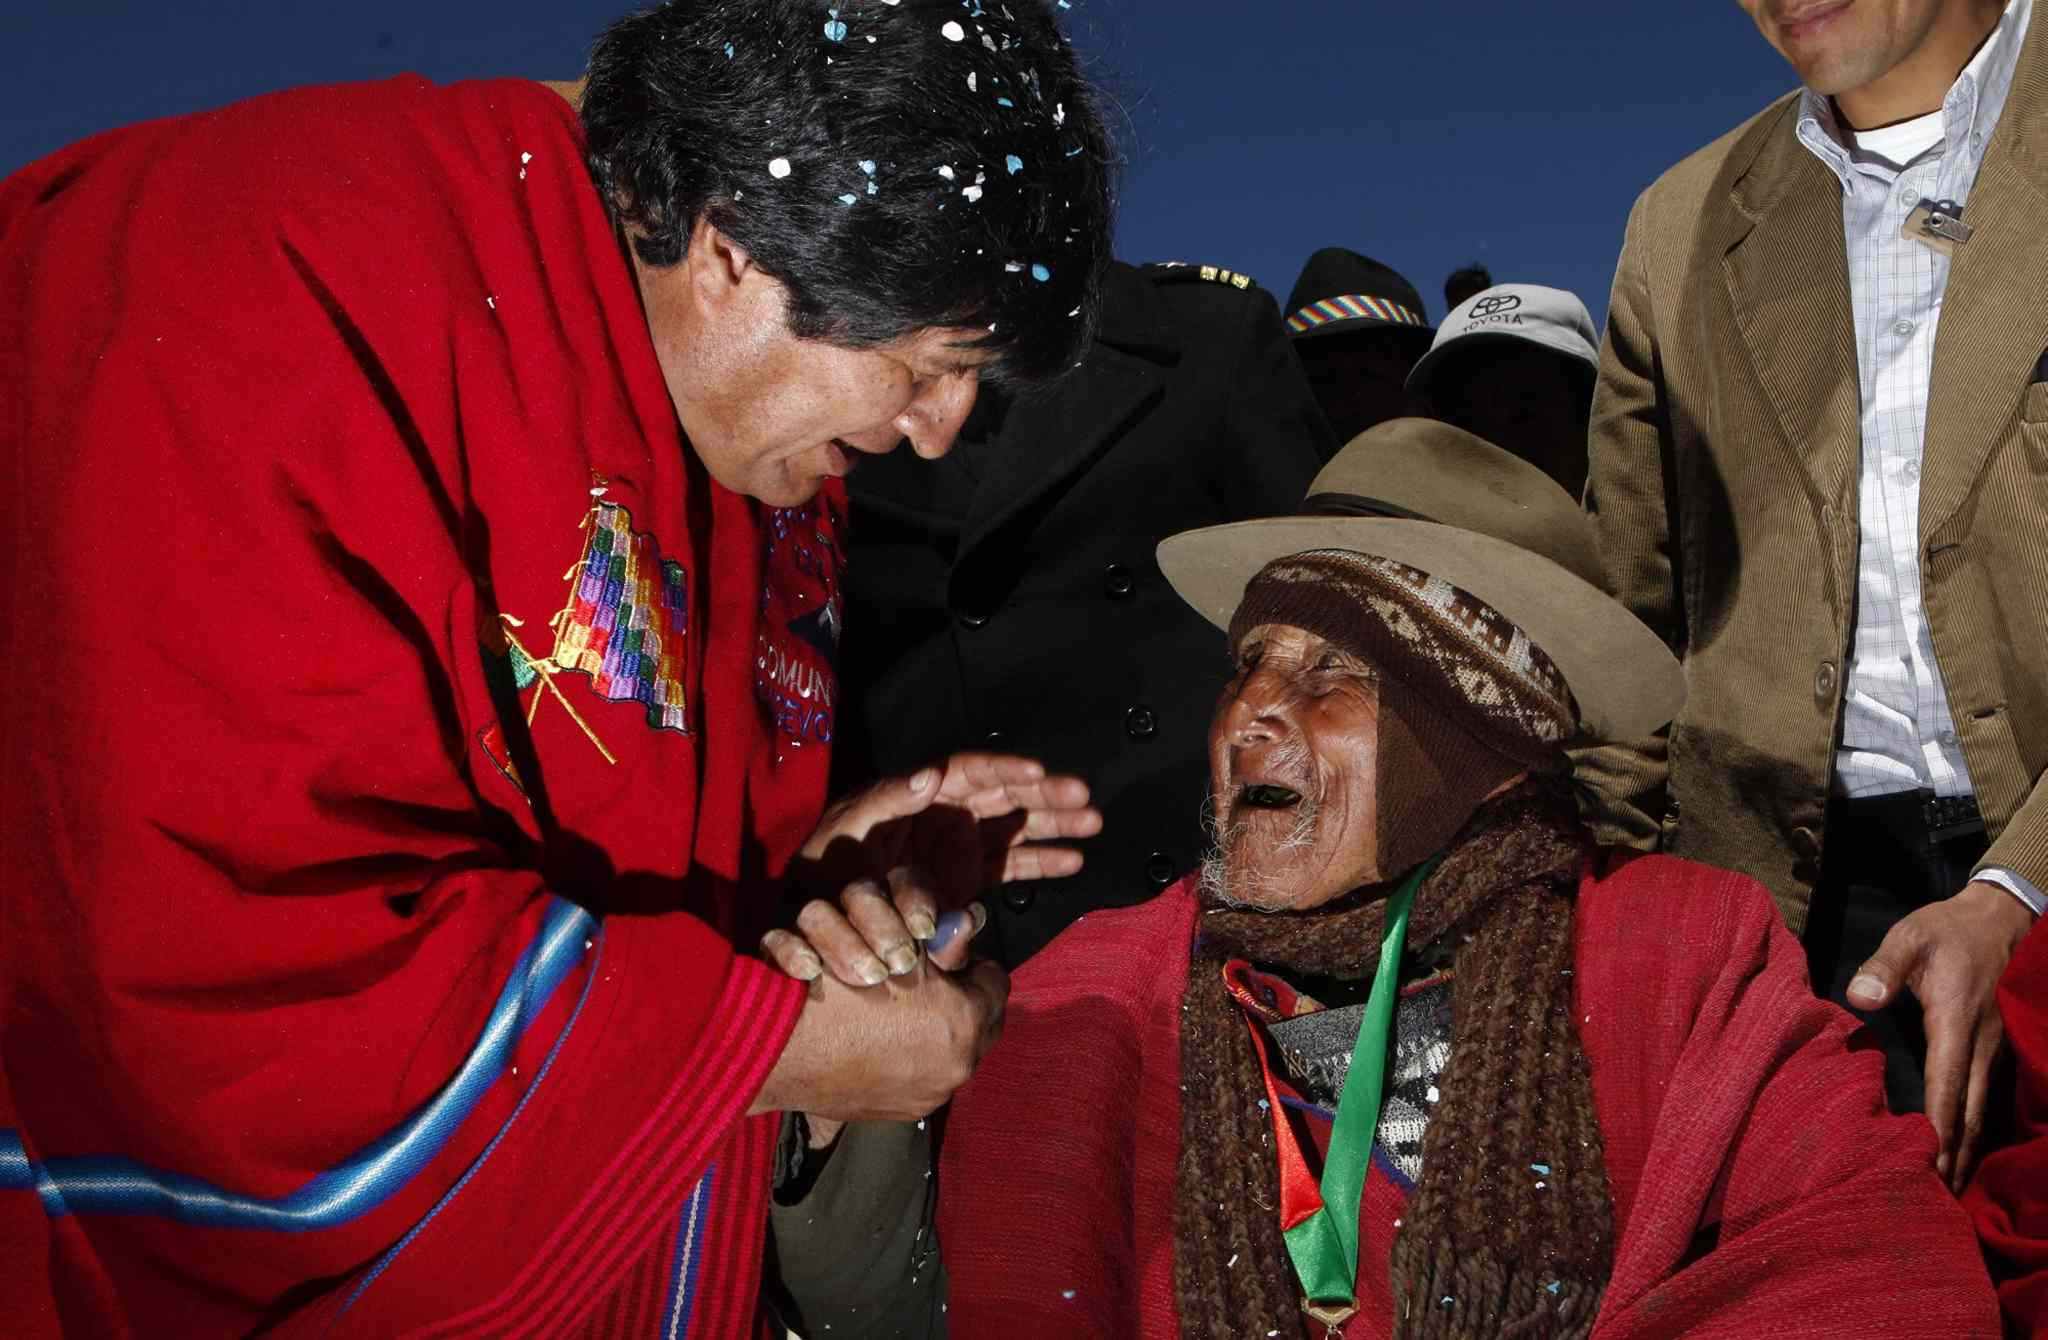 Bolivia's President Evo Morales greets Carmelo Flores, a native Aymara, outside Flores' home in the village of Frasquia, Bolivia, Monday, Sept. 16, 2013. If Bolivia's public records are correct, Flores is the oldest living person ever documented. They say he turned 123 in July.